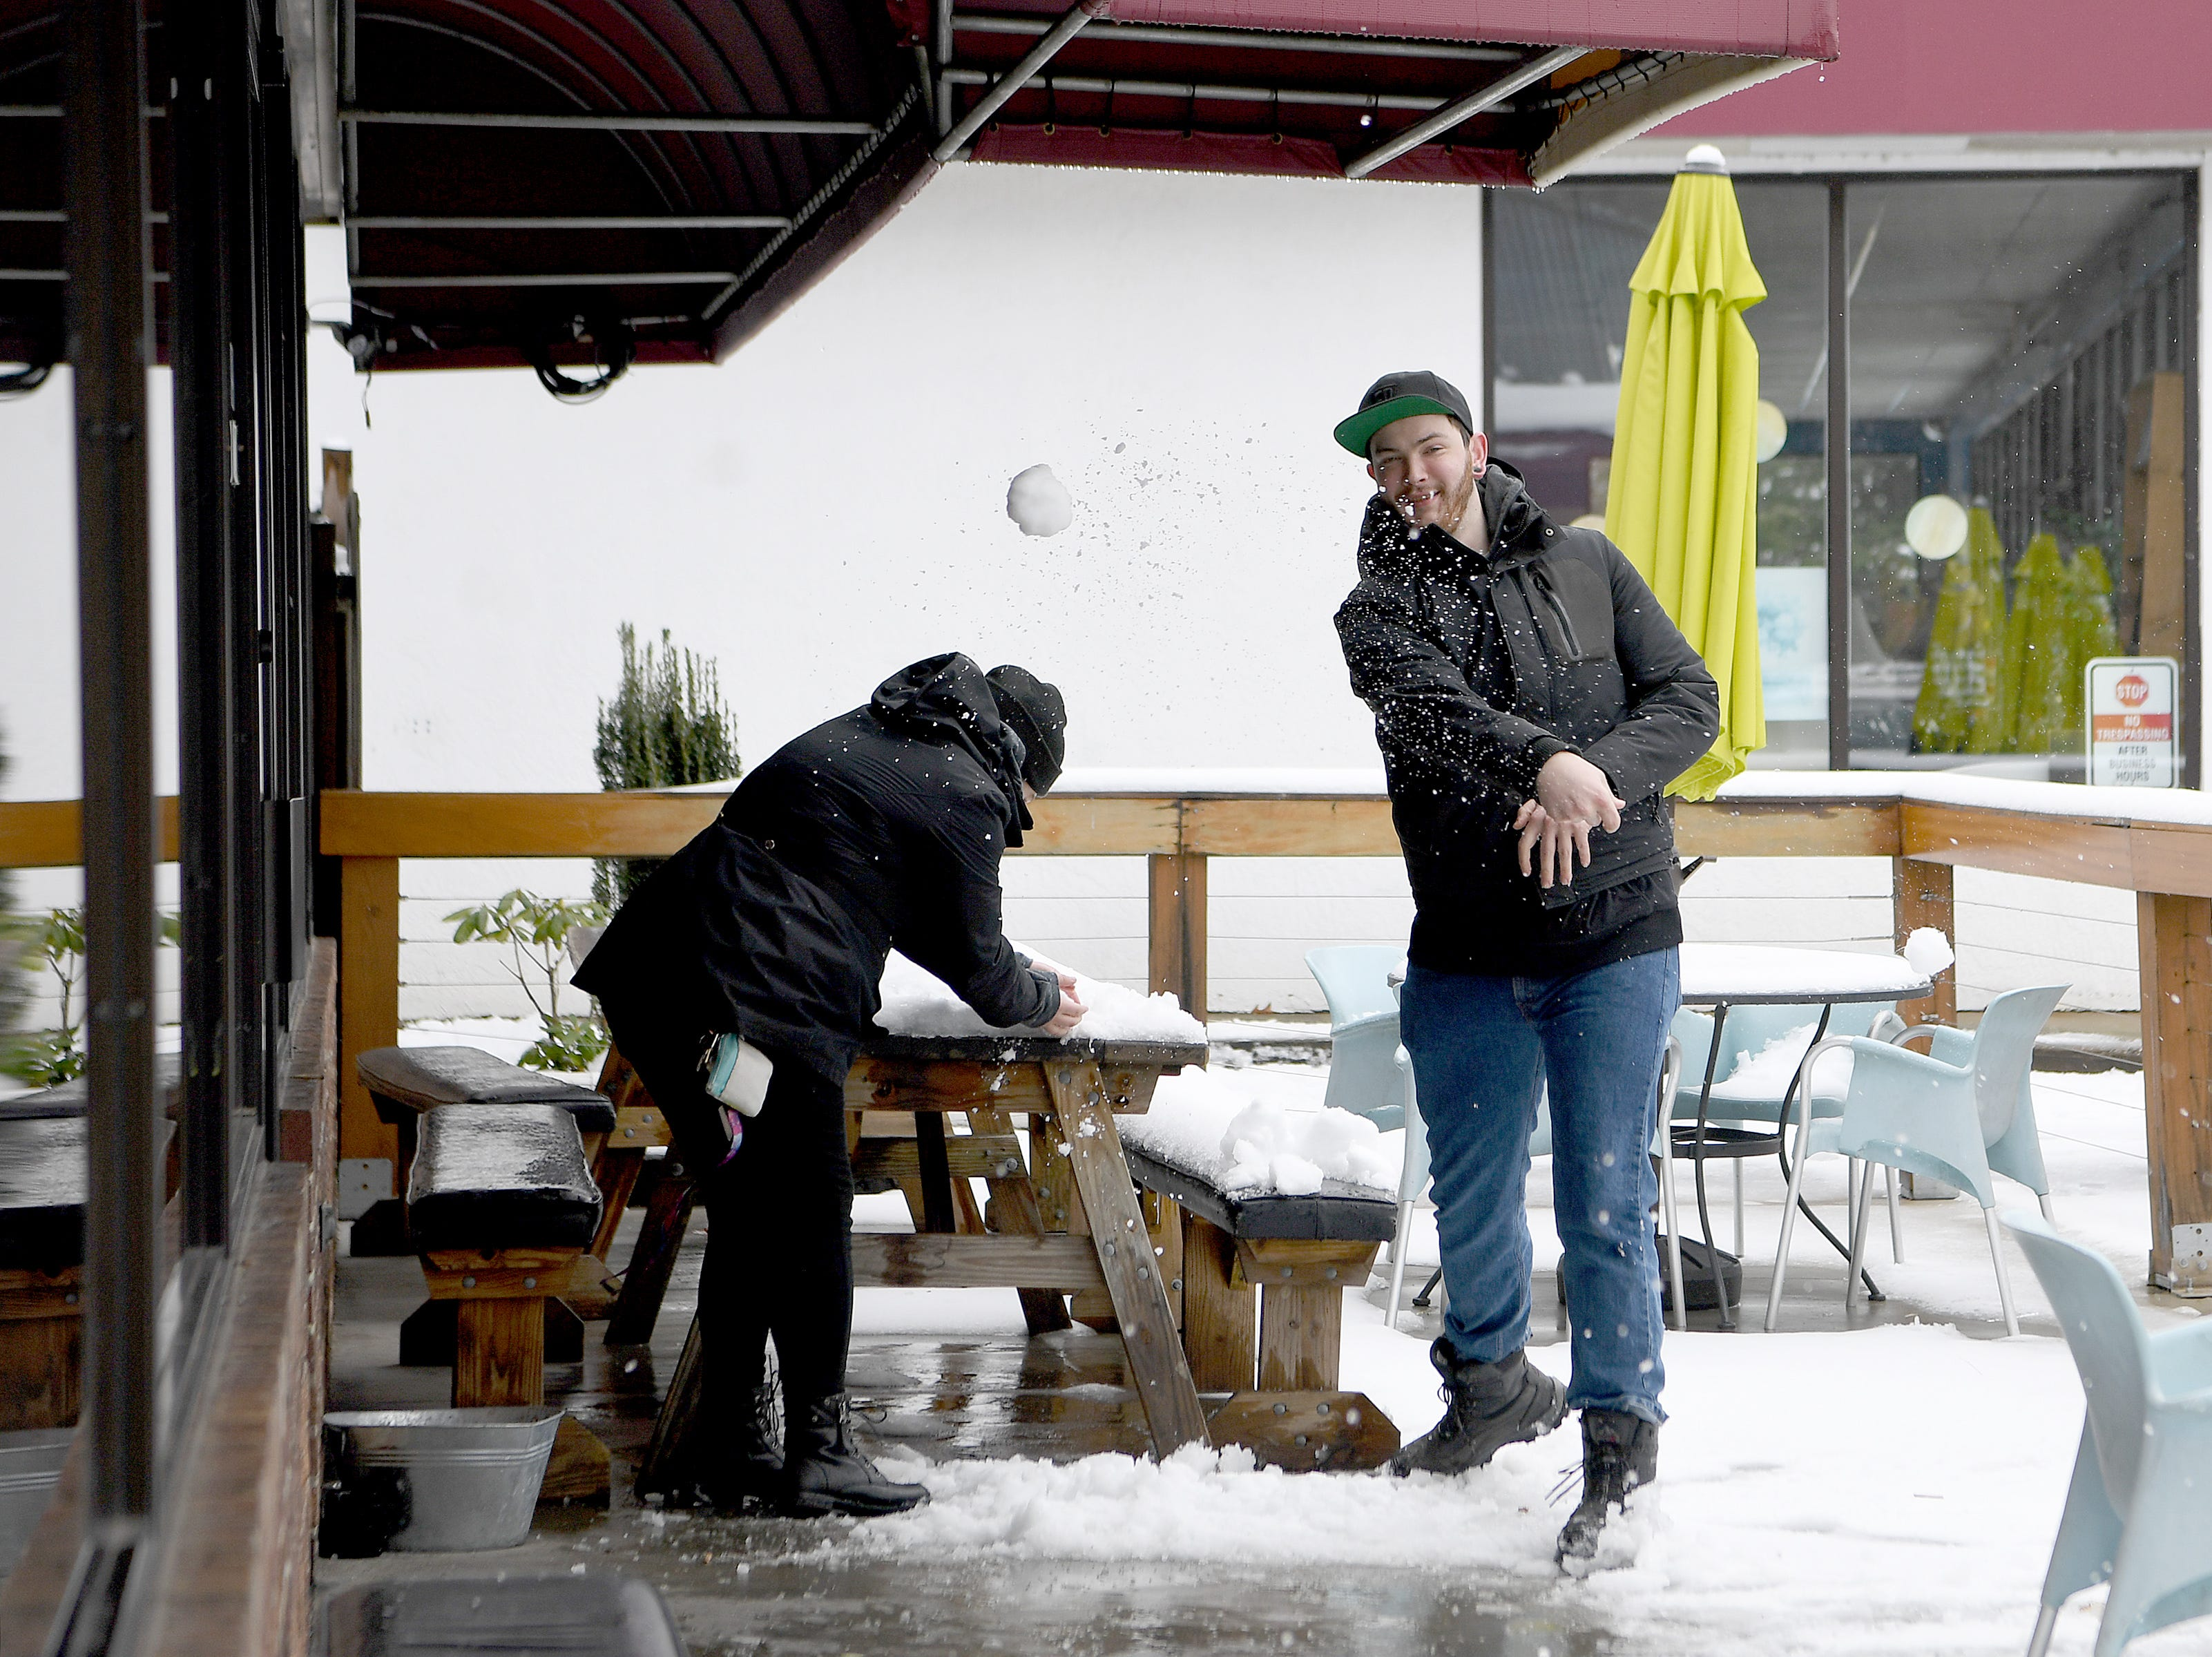 Katie Abney and John Herwig have a snowball fight on the porch of The Social in East Asheville on Dec. 9, 2018.